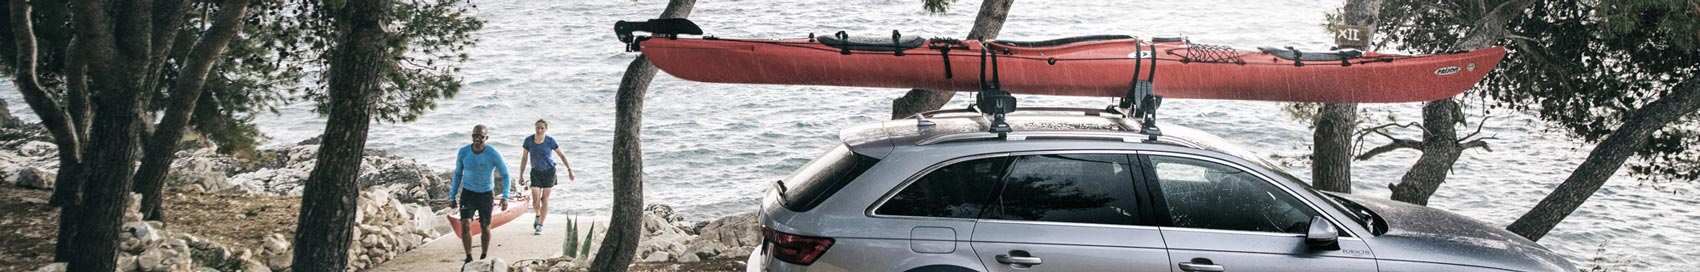 A range of versatile, easy to use roof bars, roof racks, cradles and accessories to help transport your watersport's equipment